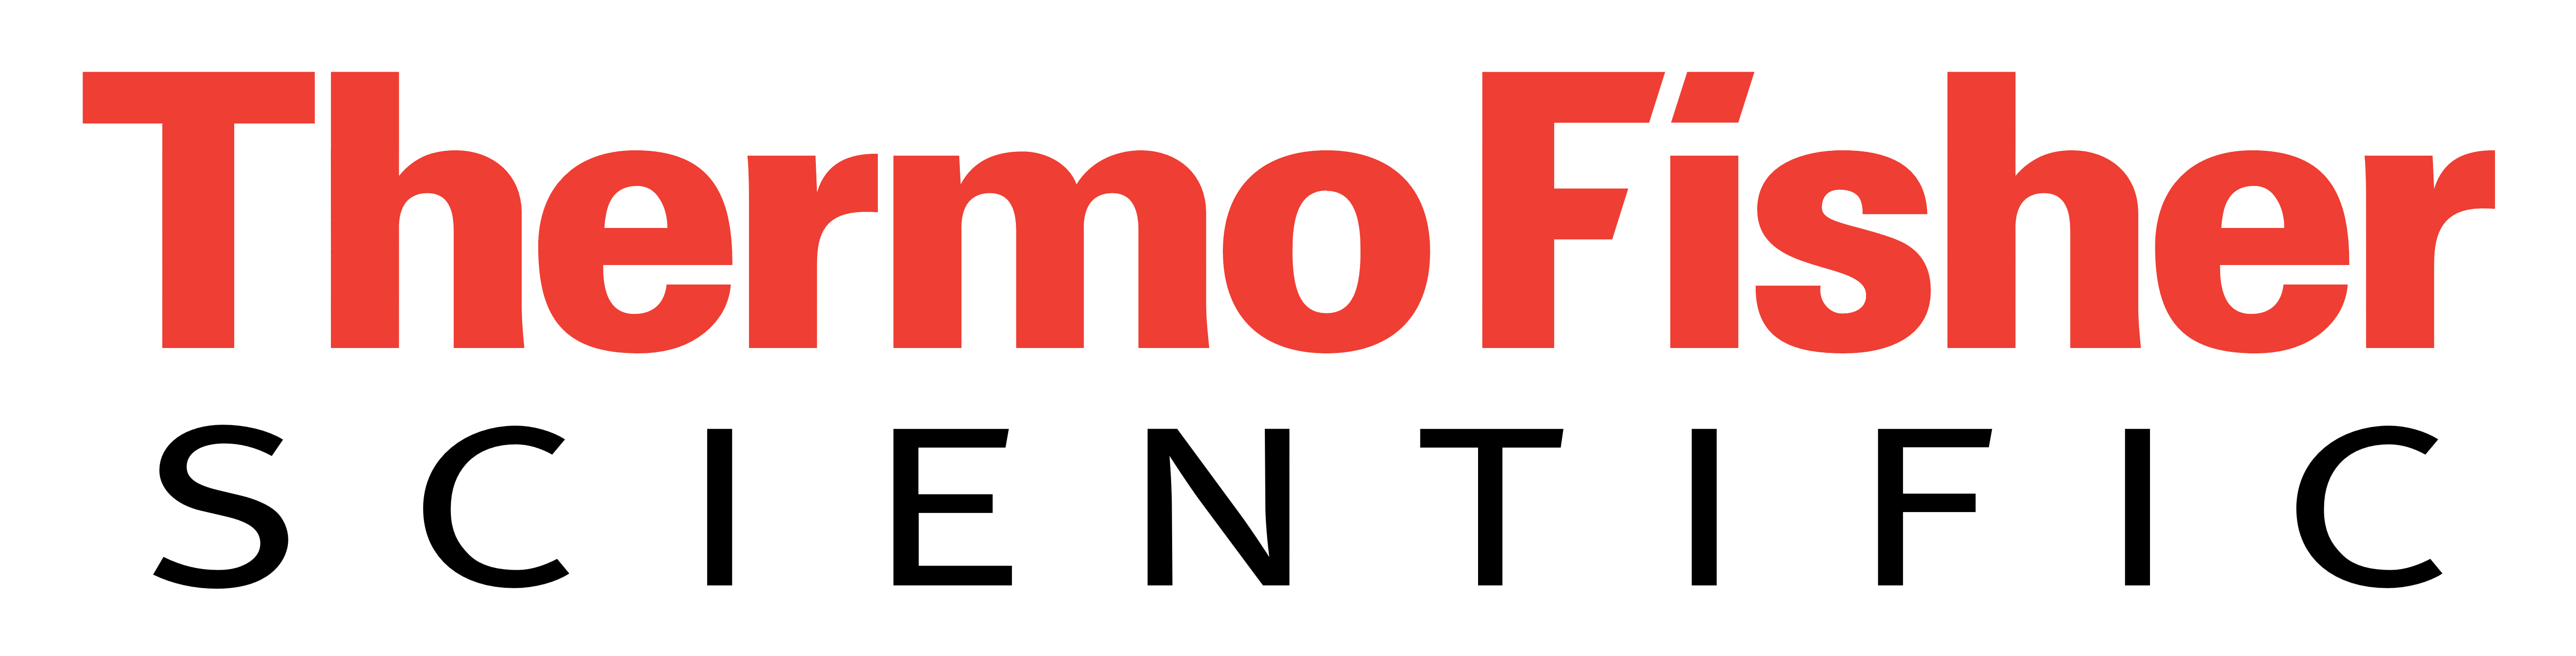 PNGPIX-COM-Thermo-Fisher-Scientific-Logo-PNG-Transparent